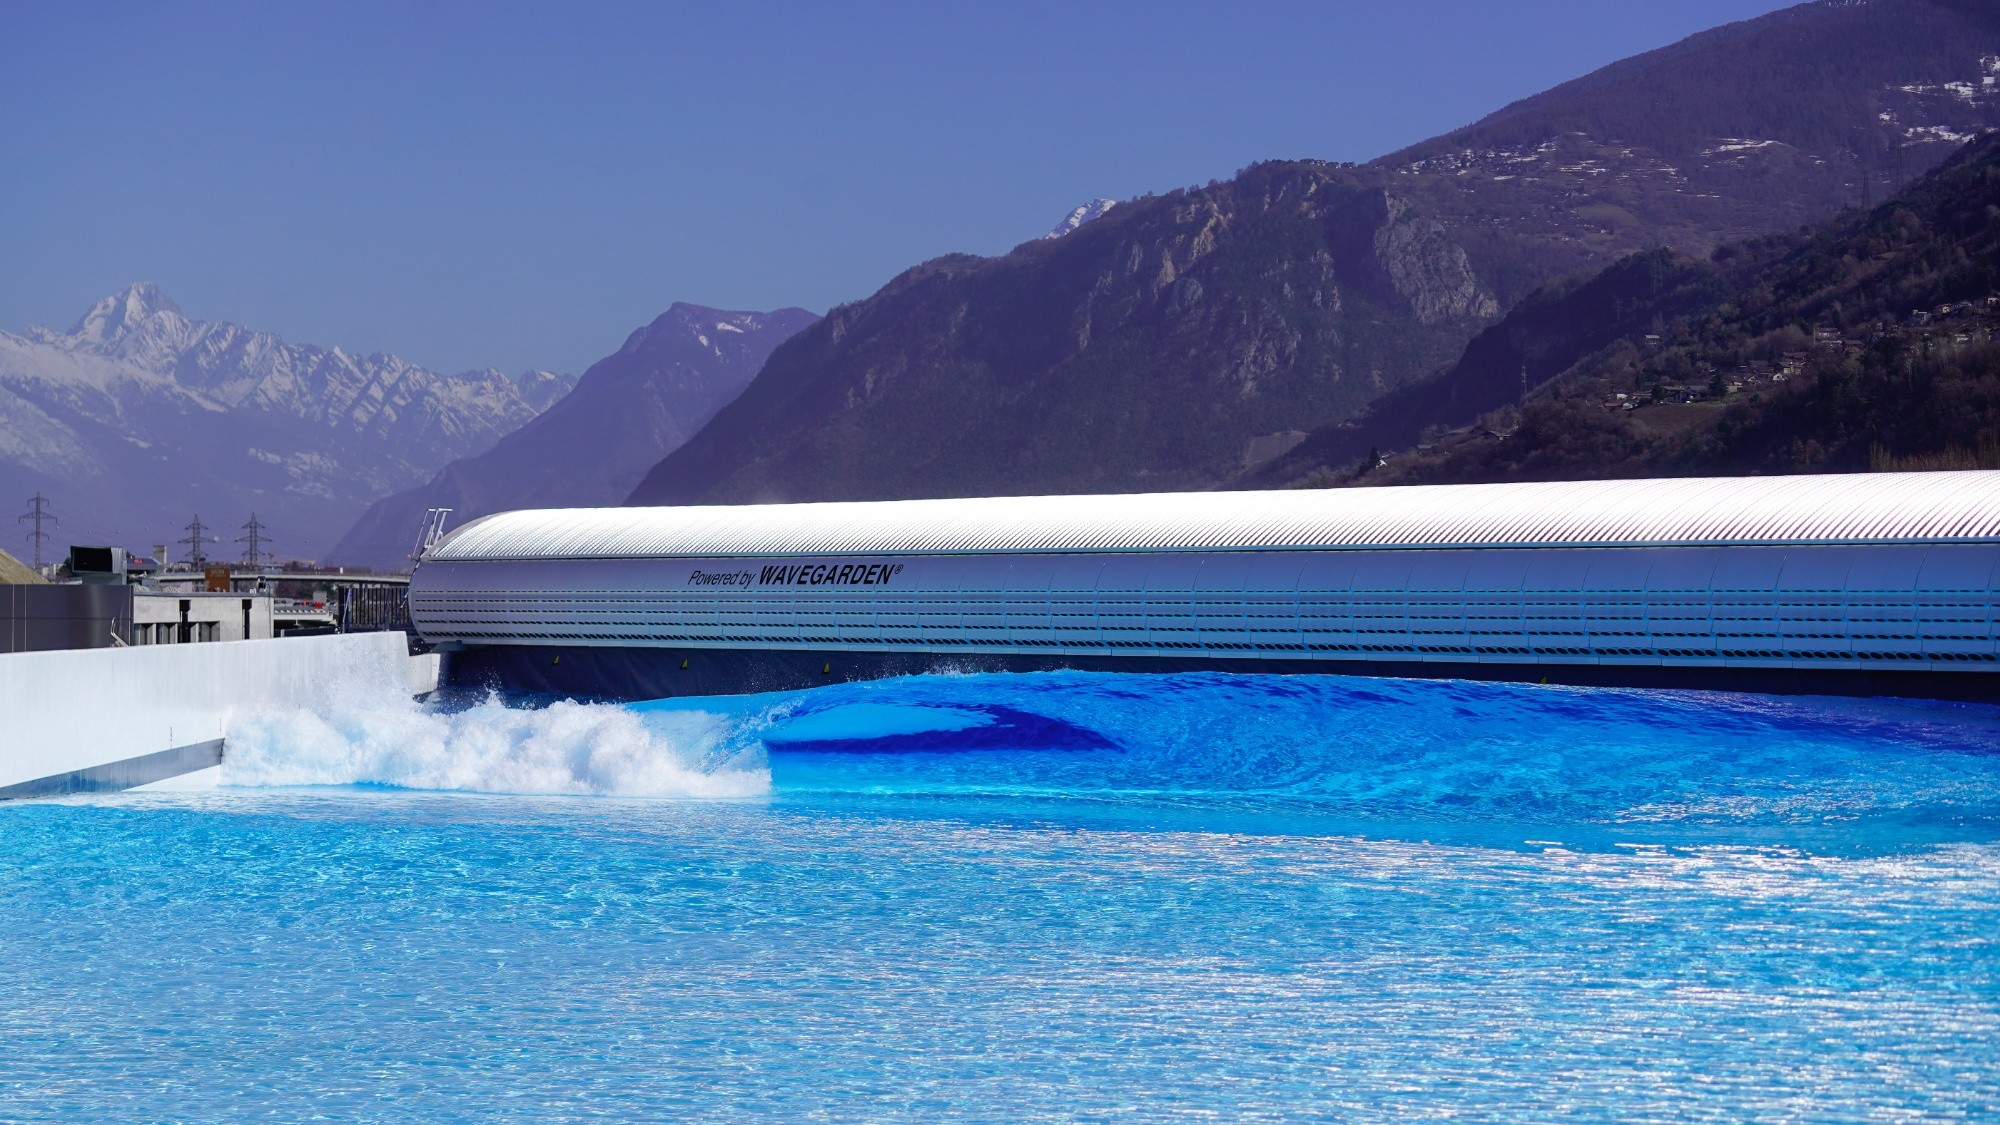 Alaia Bay wave pool in switzerland